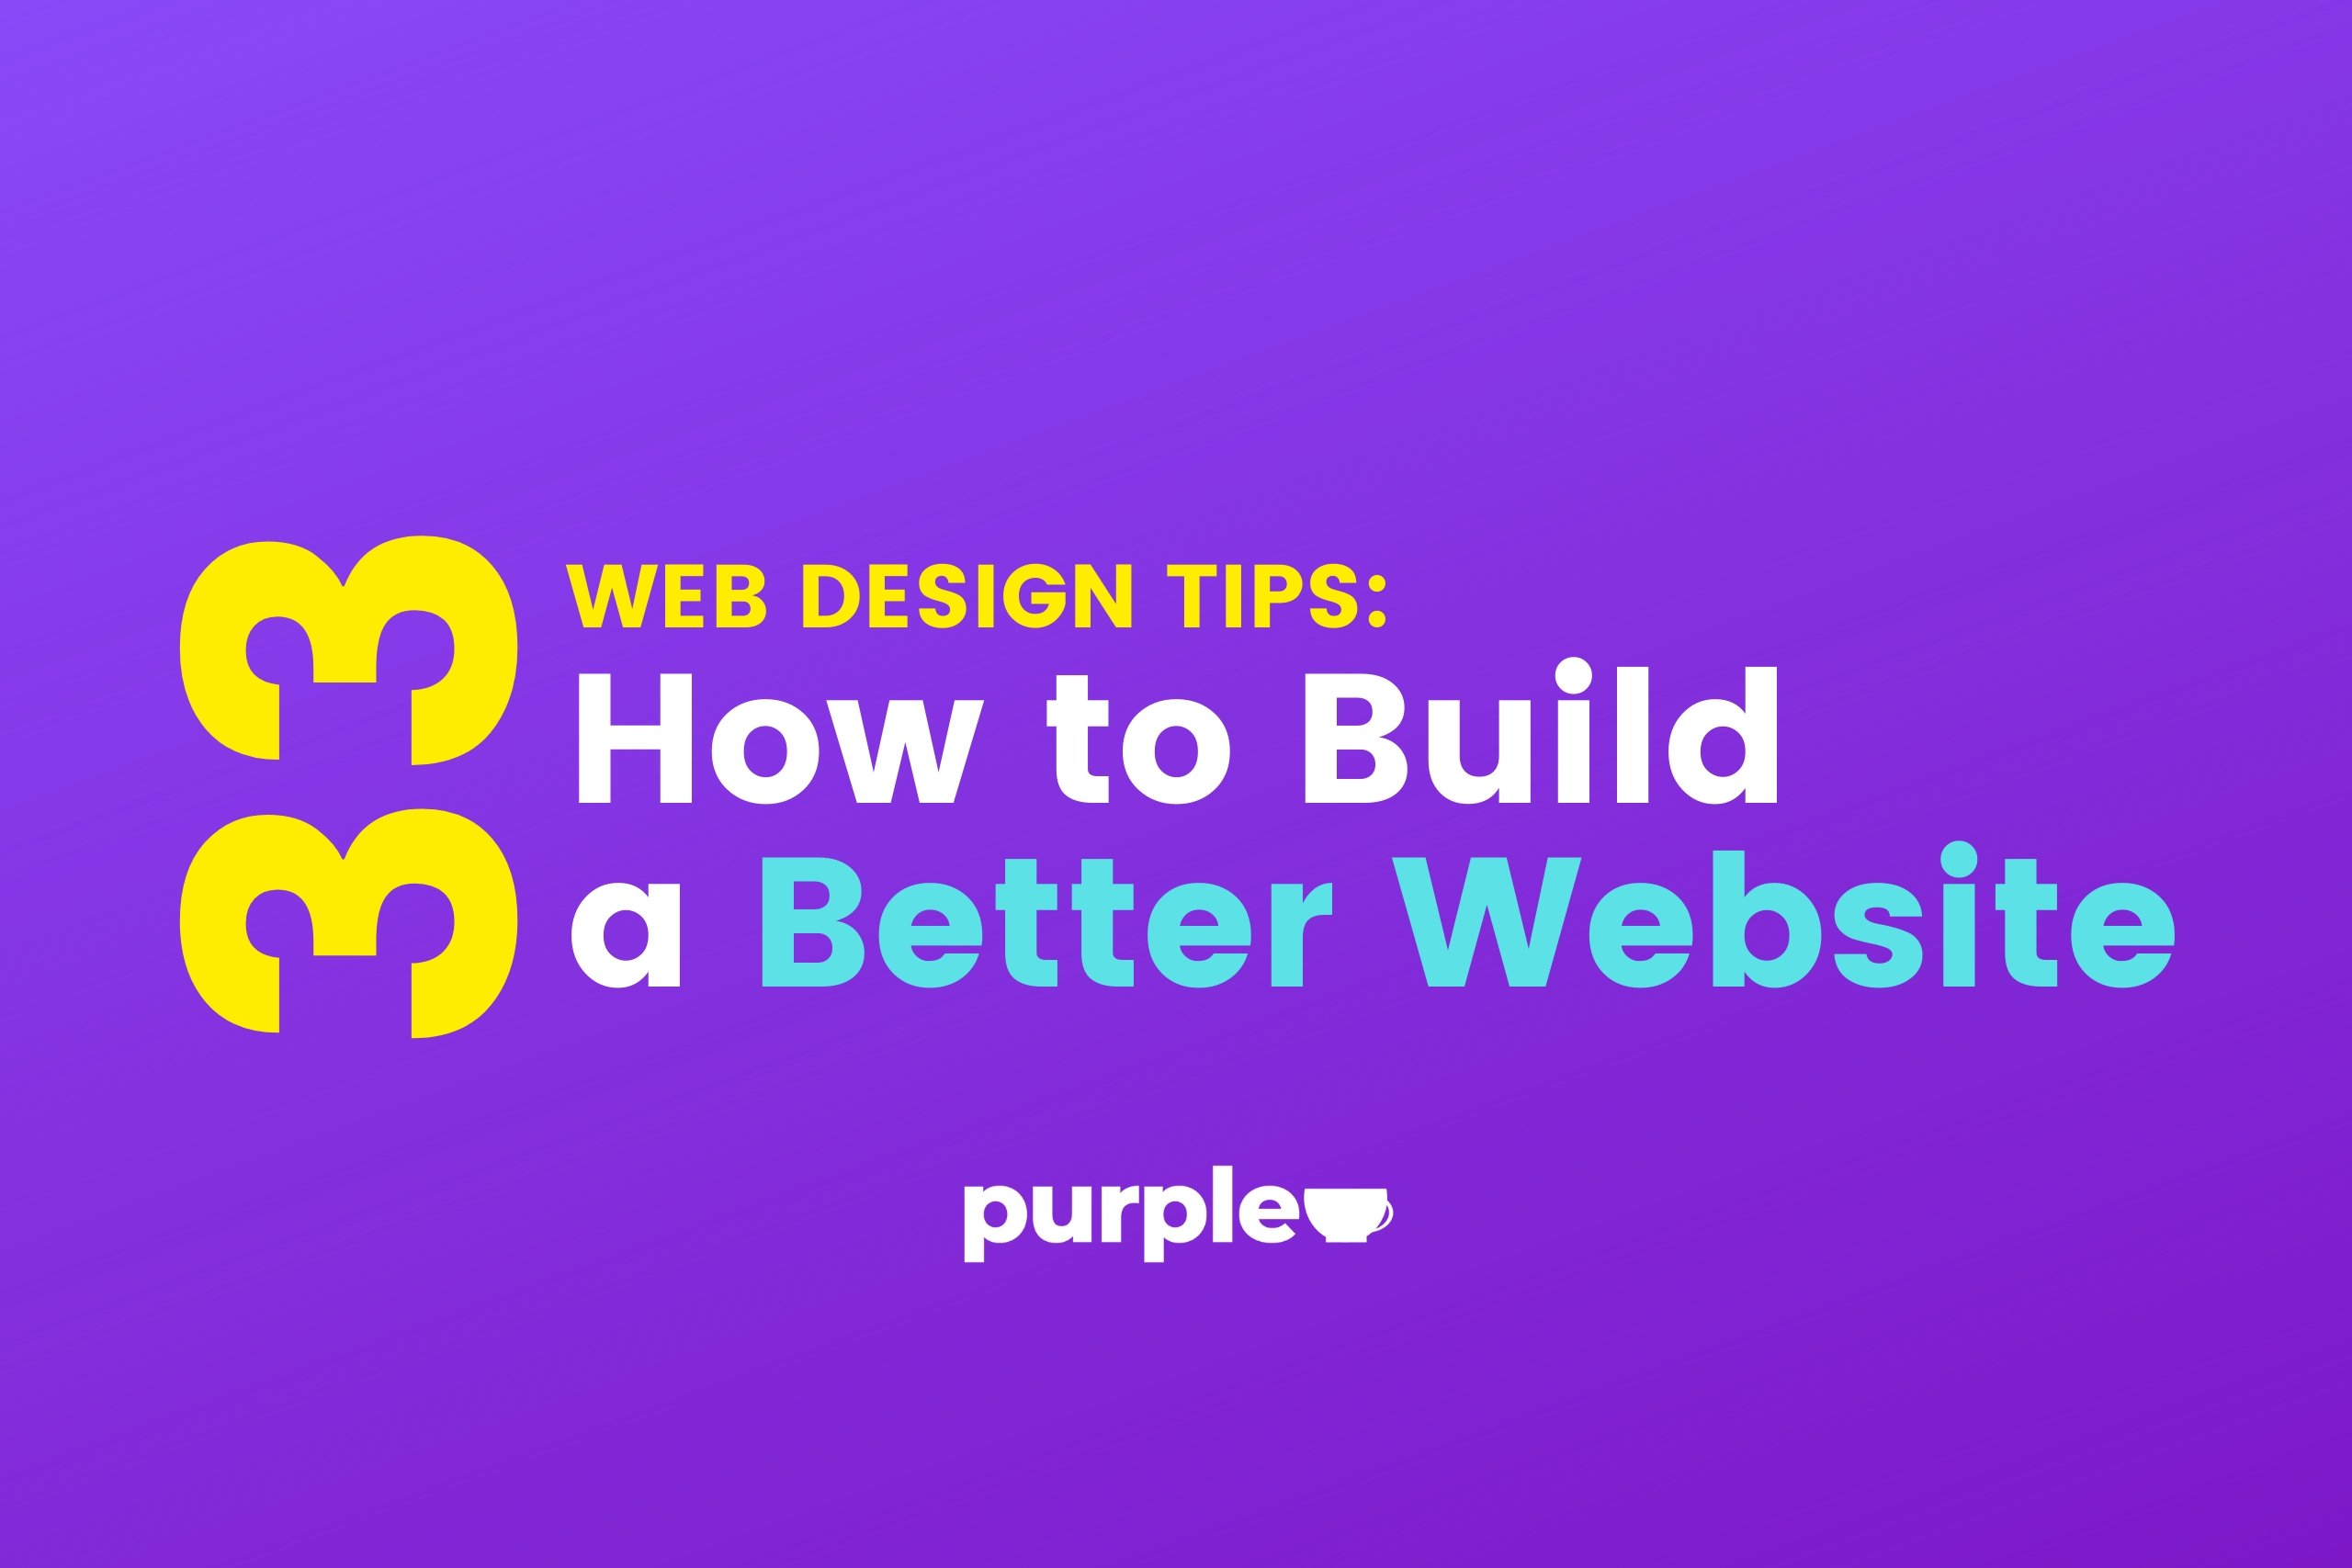 33 web design tips: how to build a better website